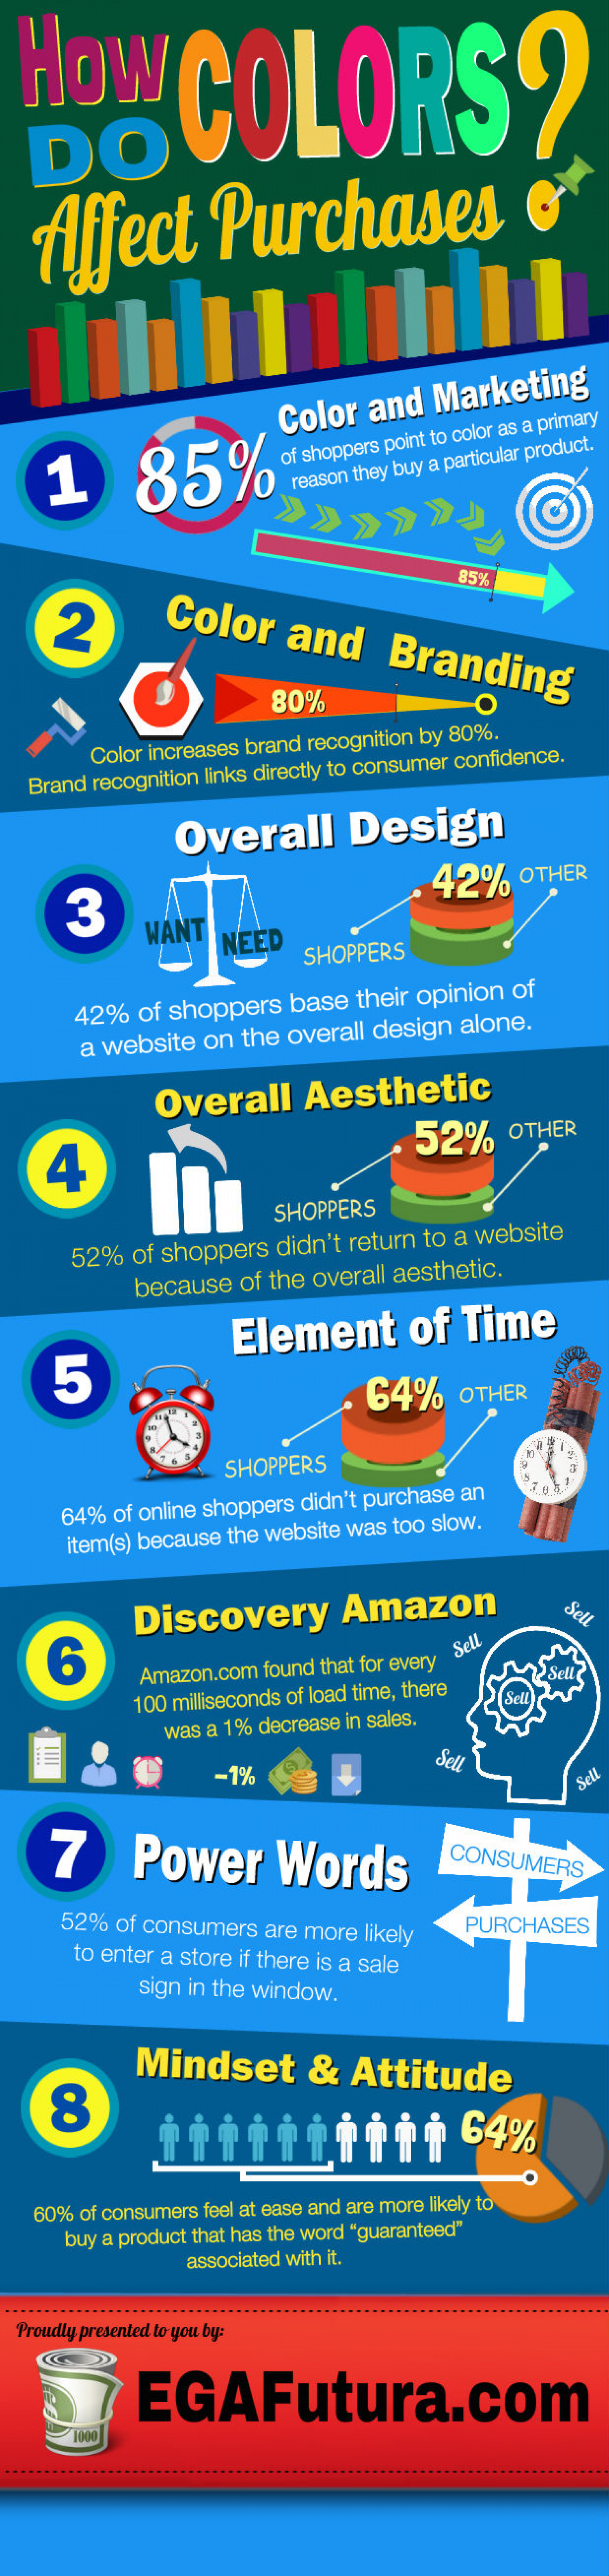 How do Colors Affect Purchases? | Visual.ly